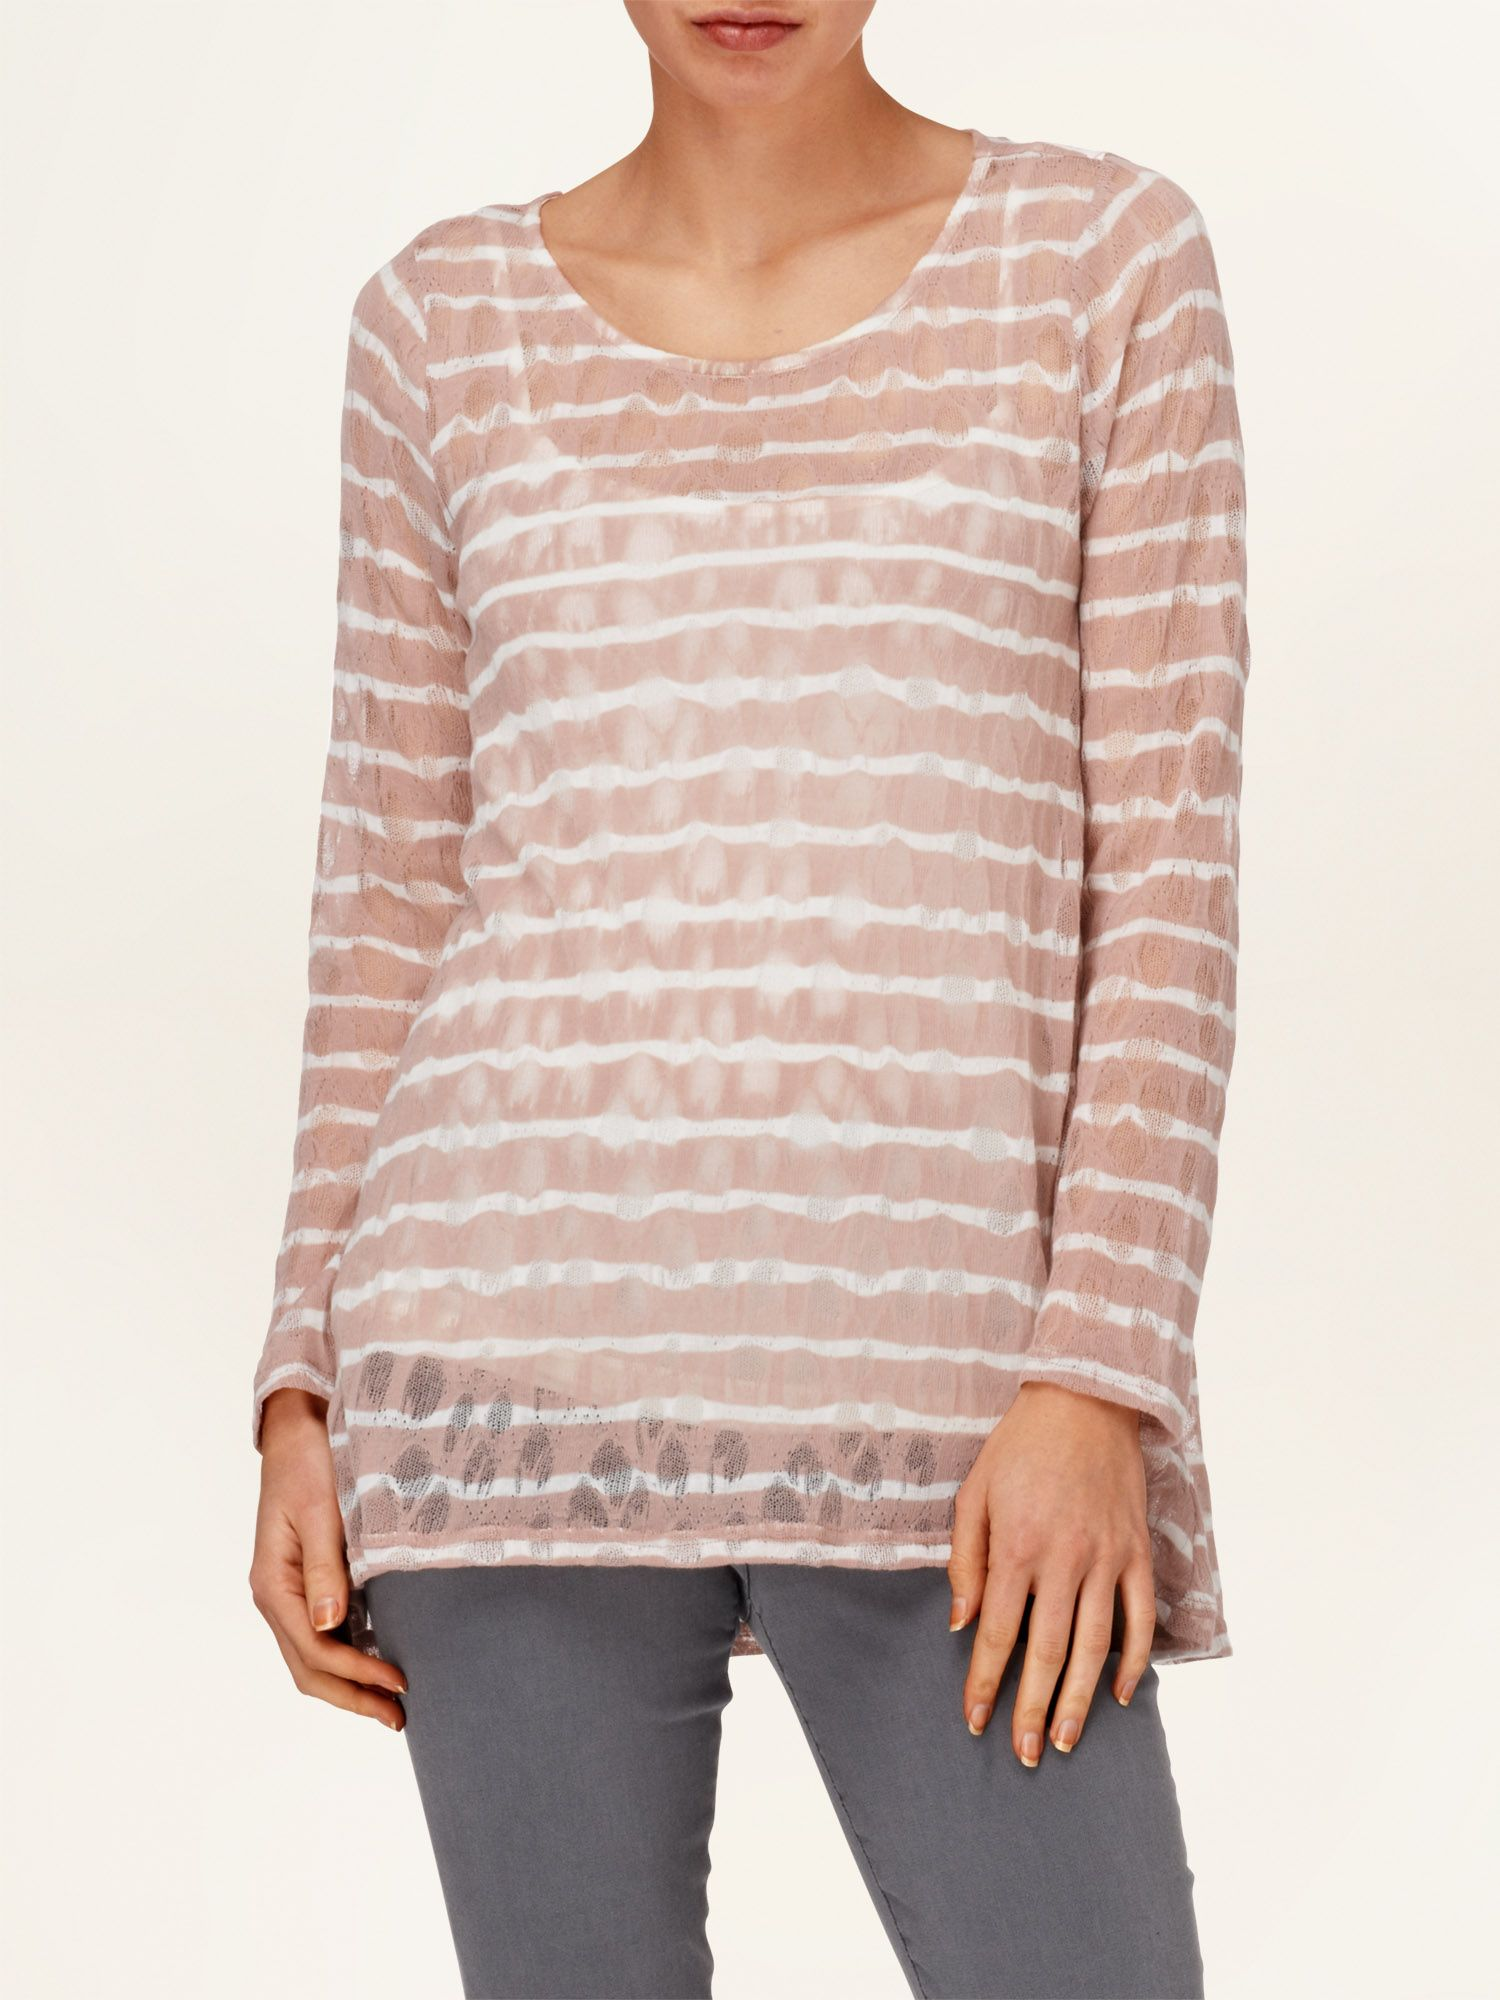 Pointelle stripe joplin top